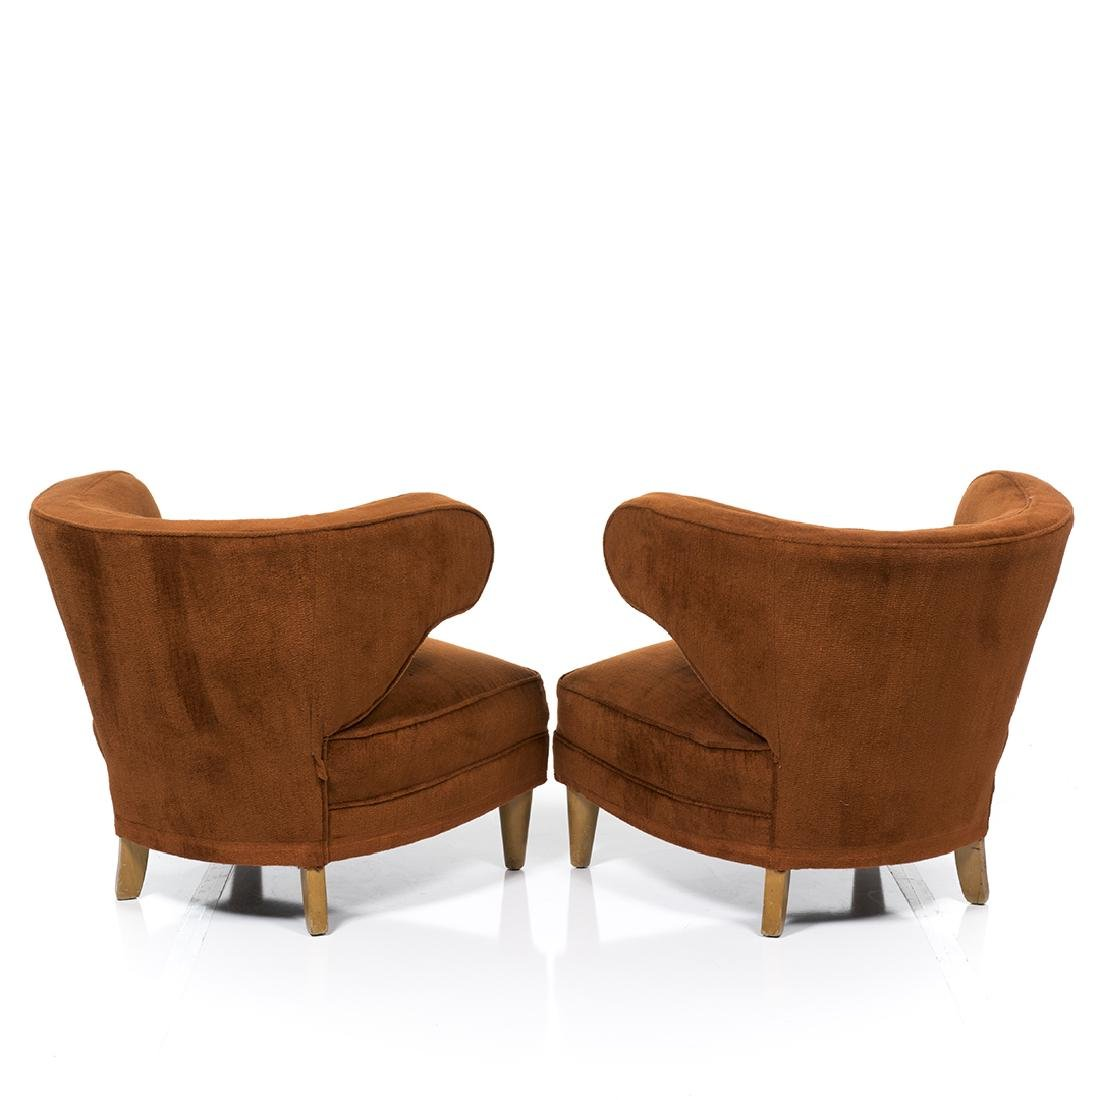 Paul Laszlo Lounge Chairs (2) - 3